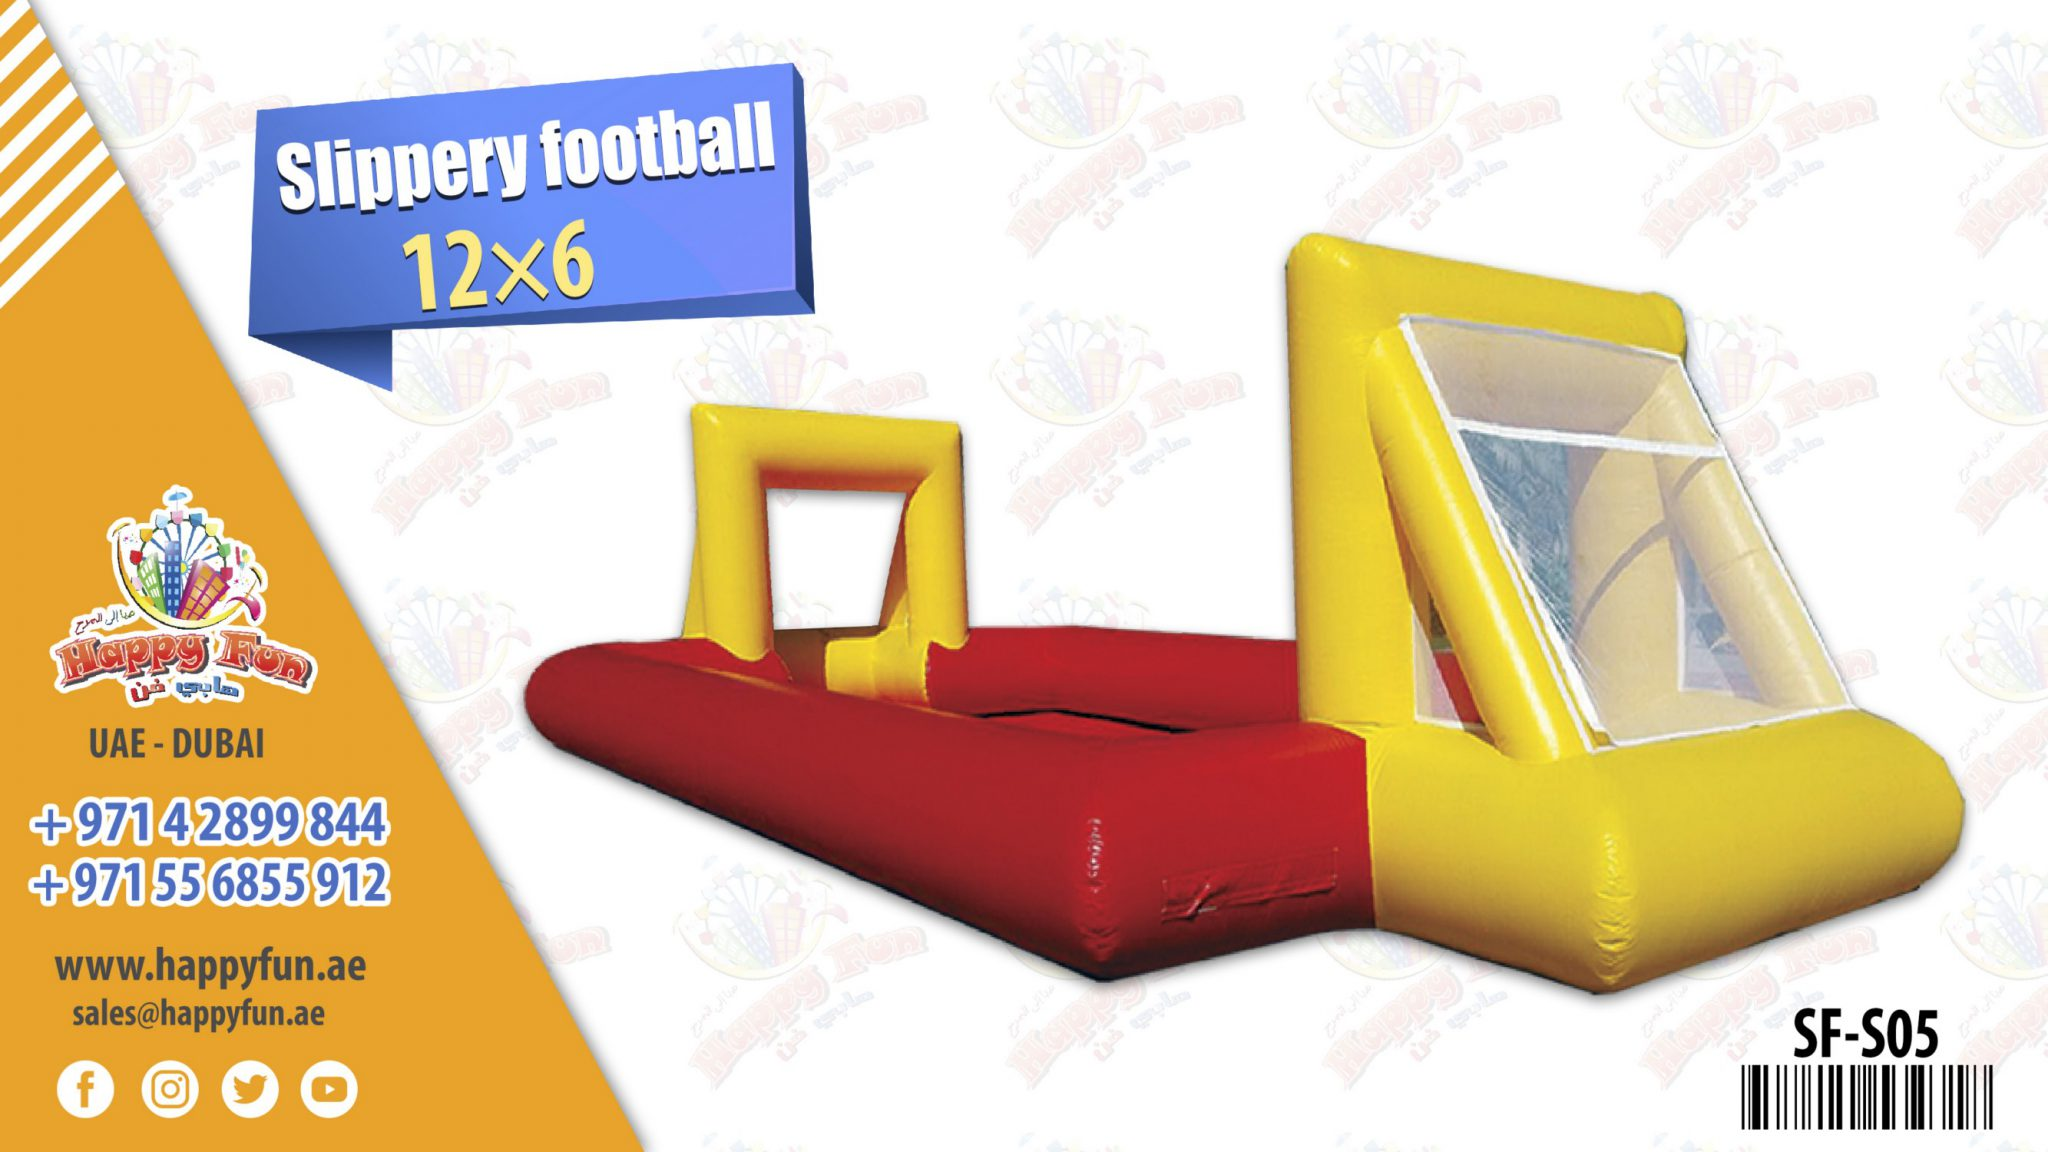 Happy Fun - Slippery football